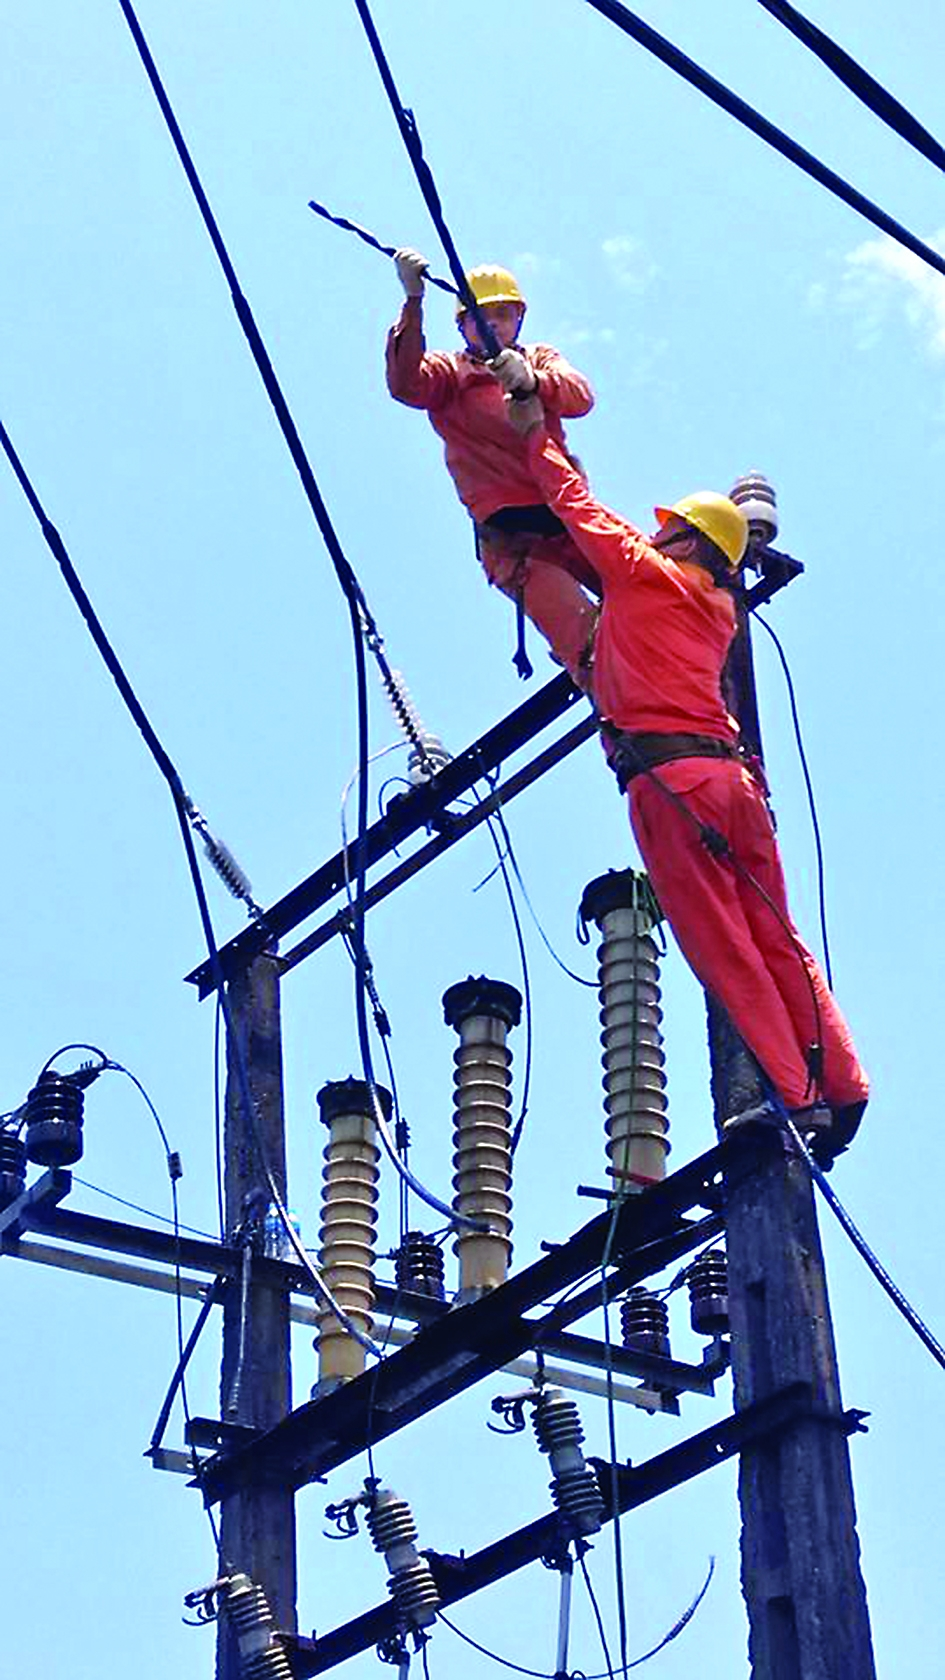 evn meets record power demand urges power saving